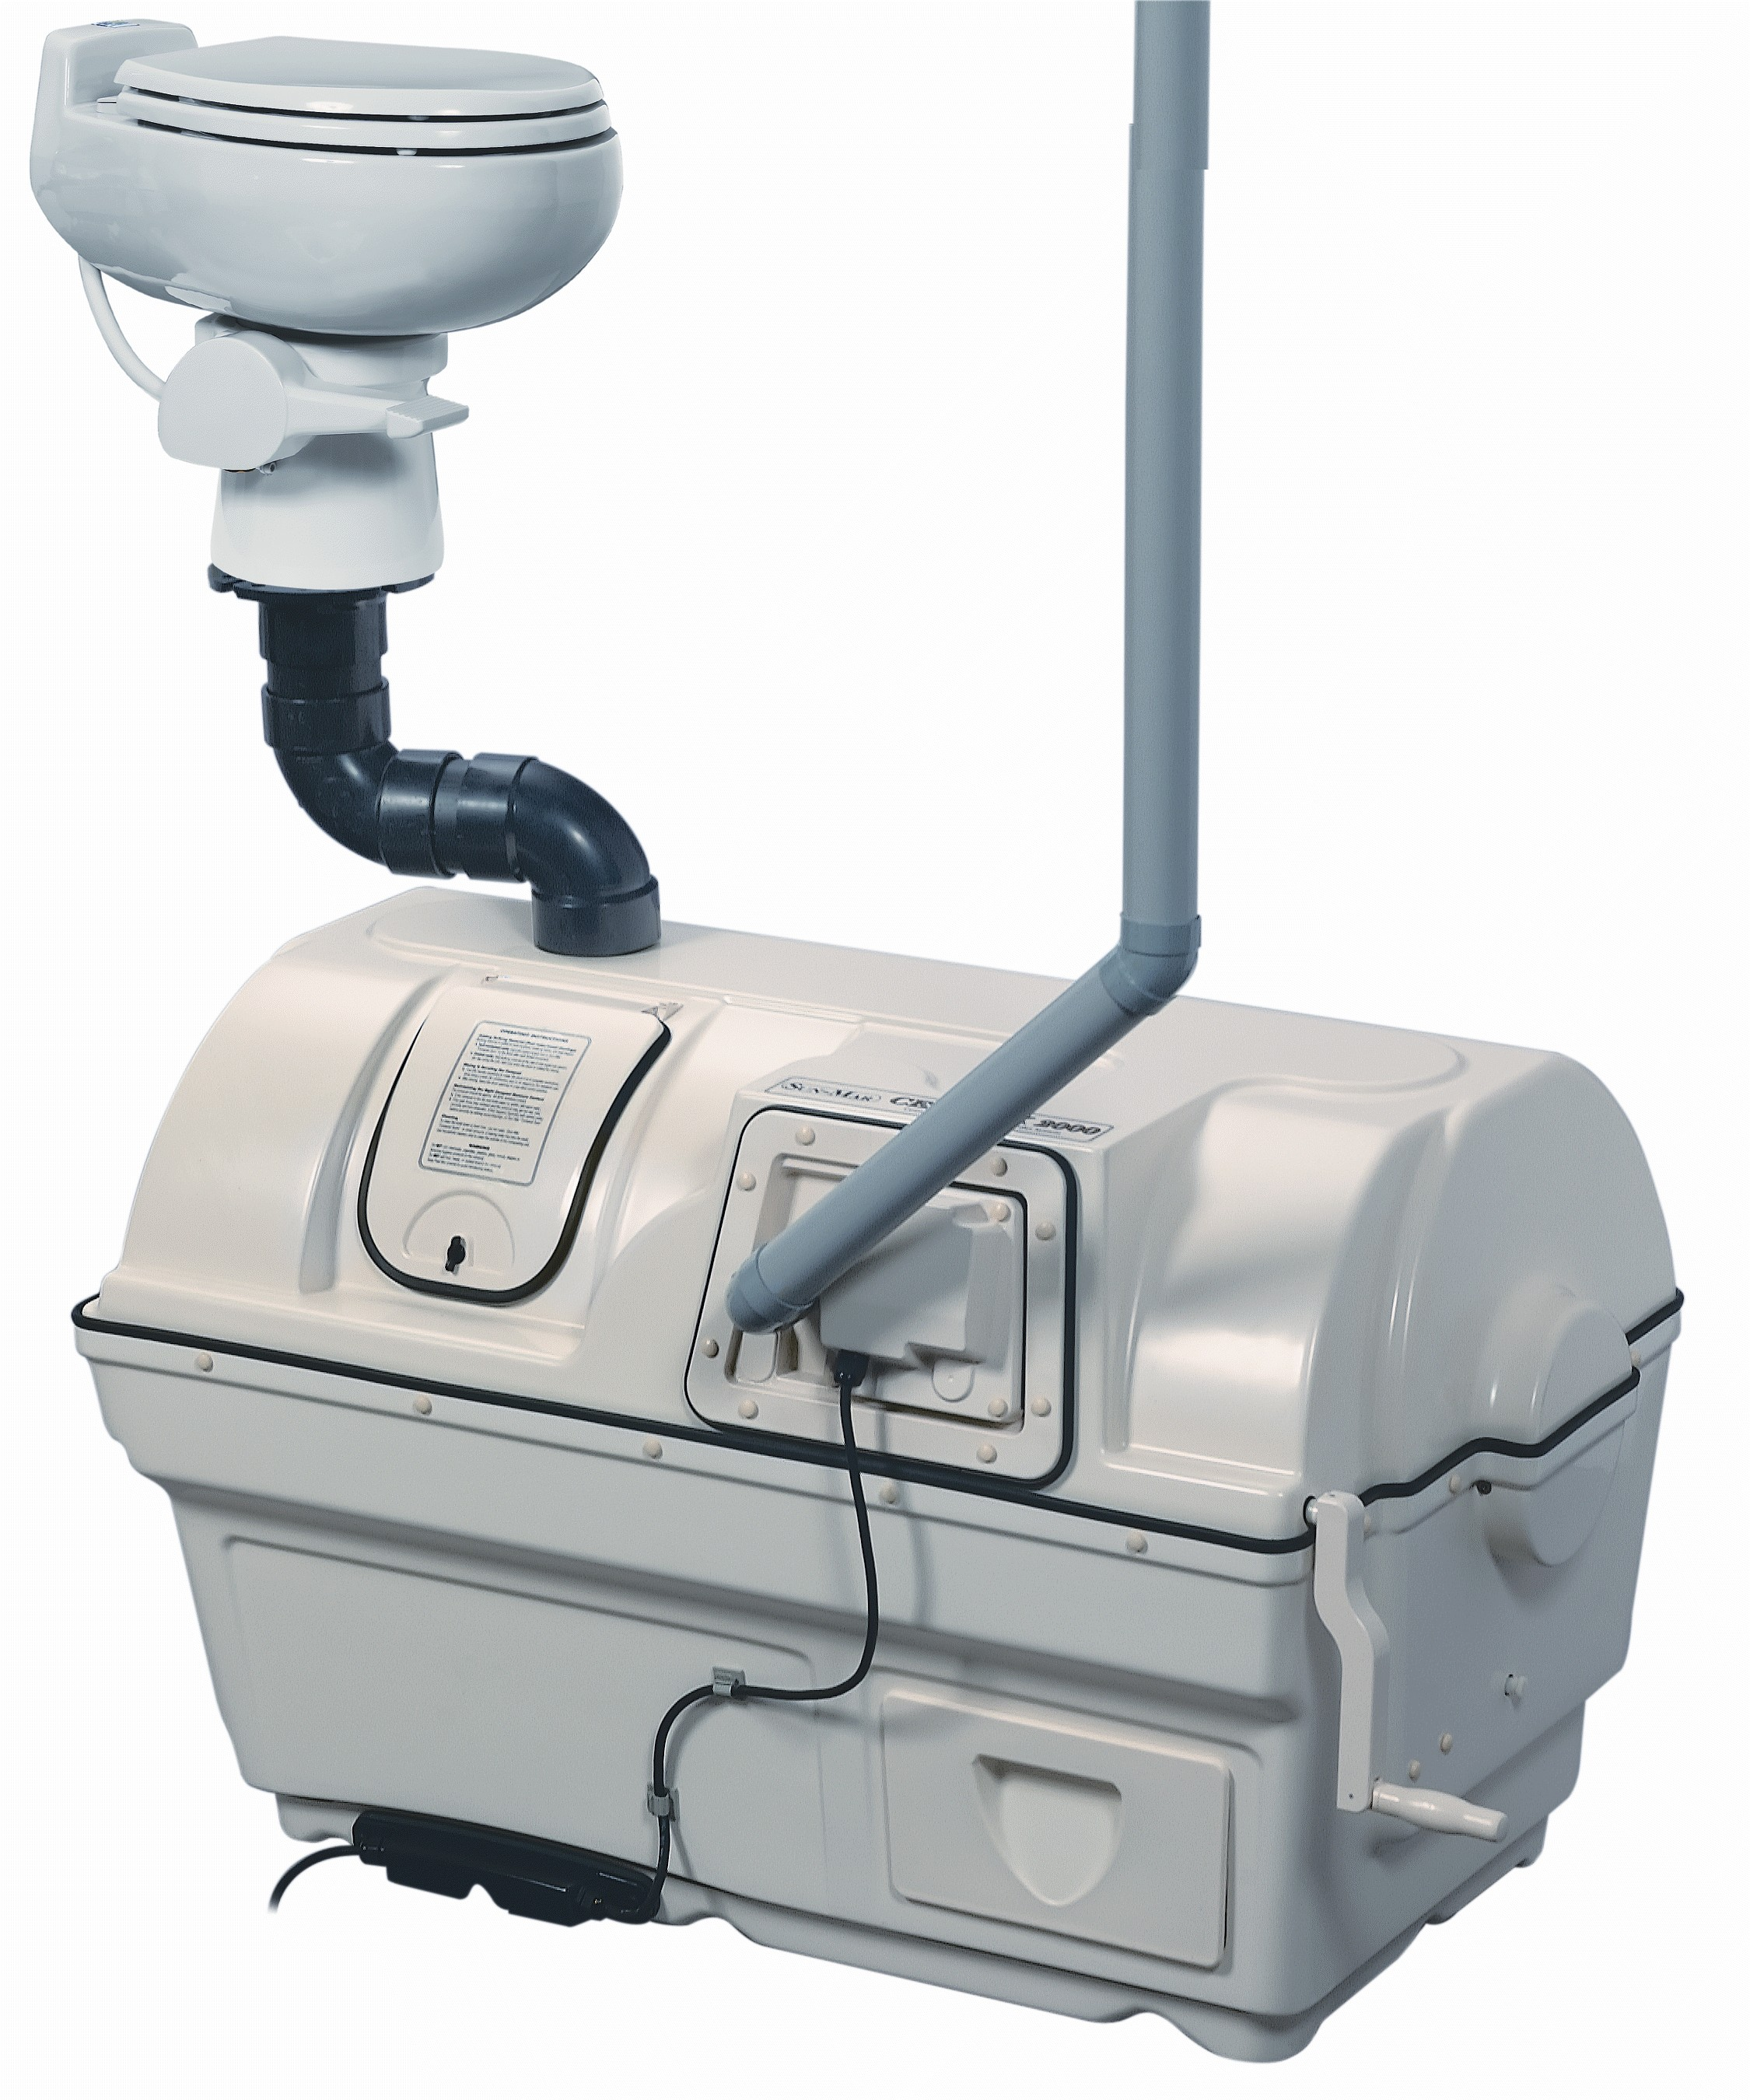 Centrex 2000 Electric Composting Toilet System